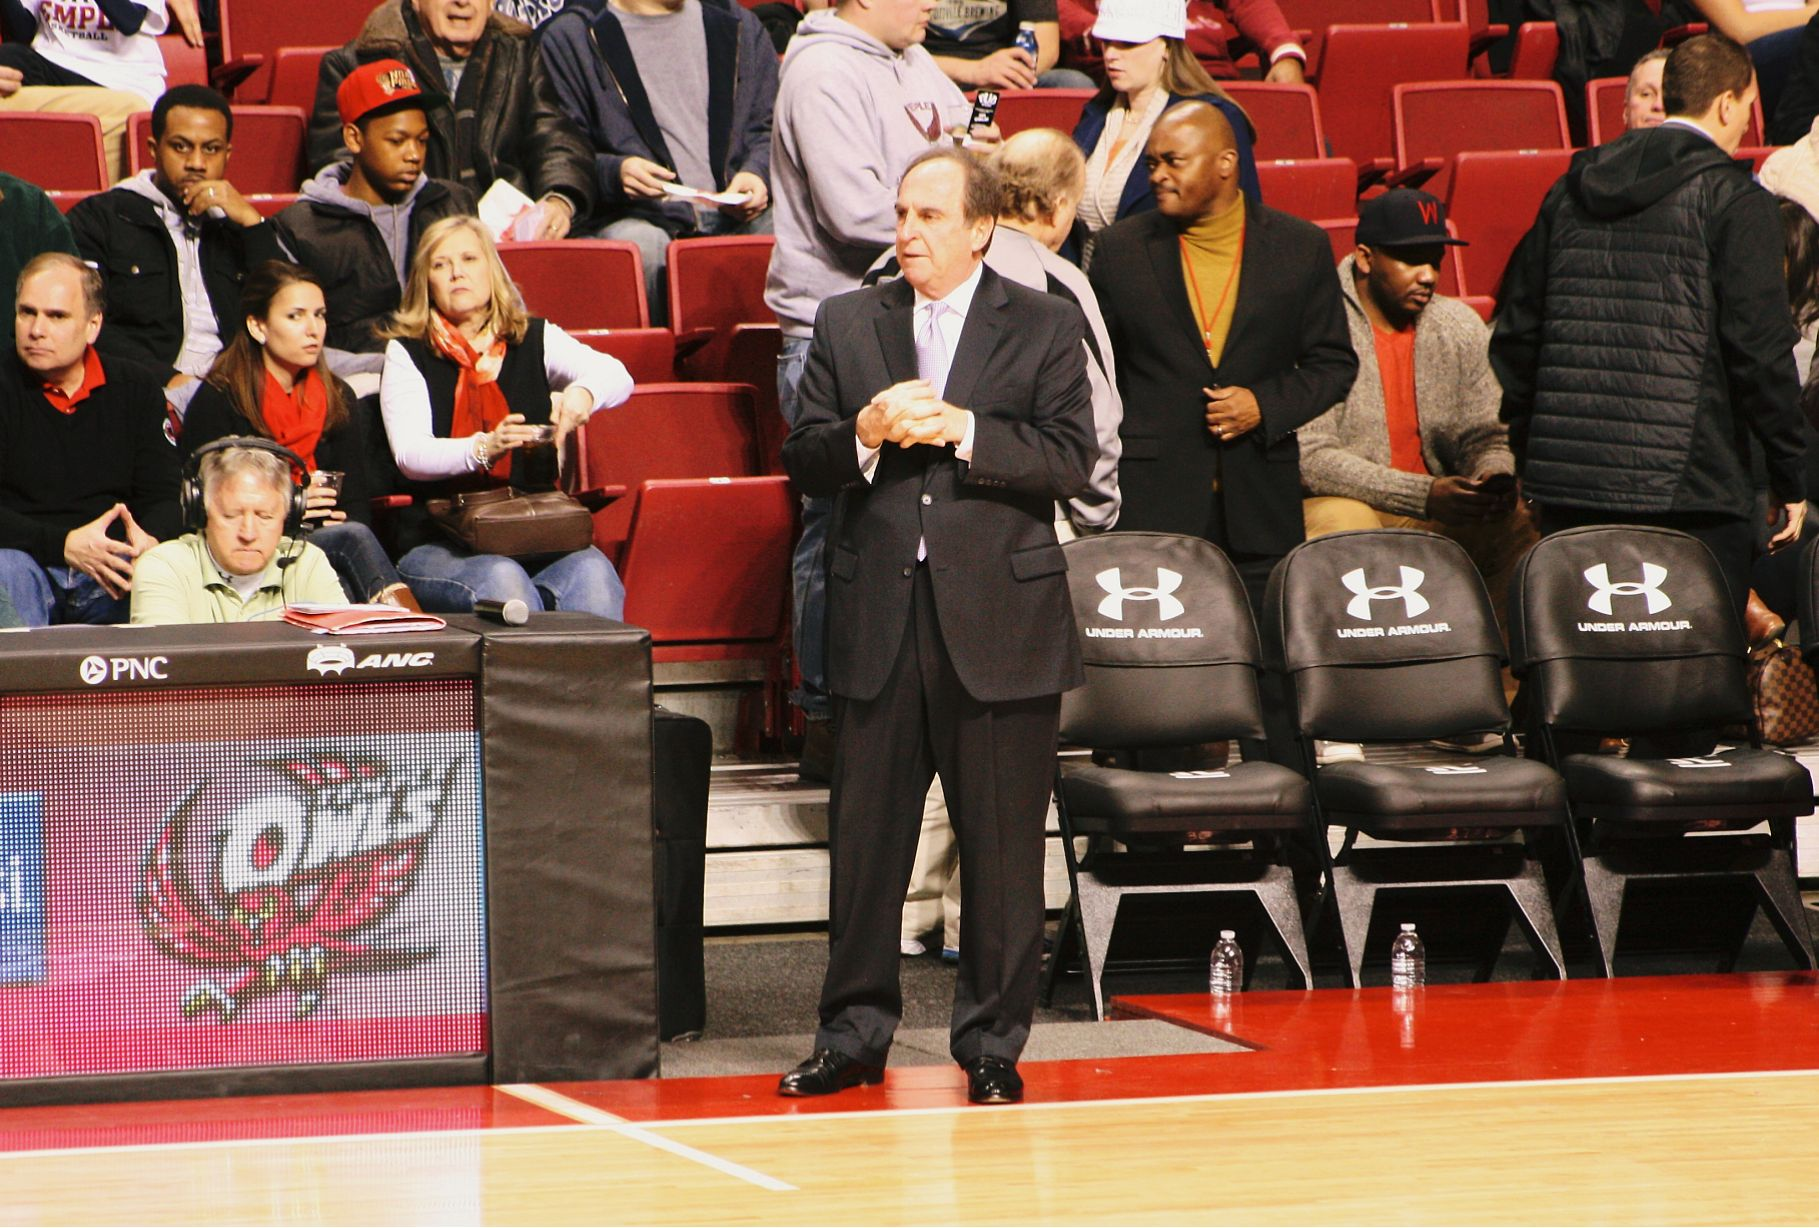 Temple's head coach Fran Dunphy has his team vying for the NCAA Tournament. Photo courtesy of Flickr Creative Commons